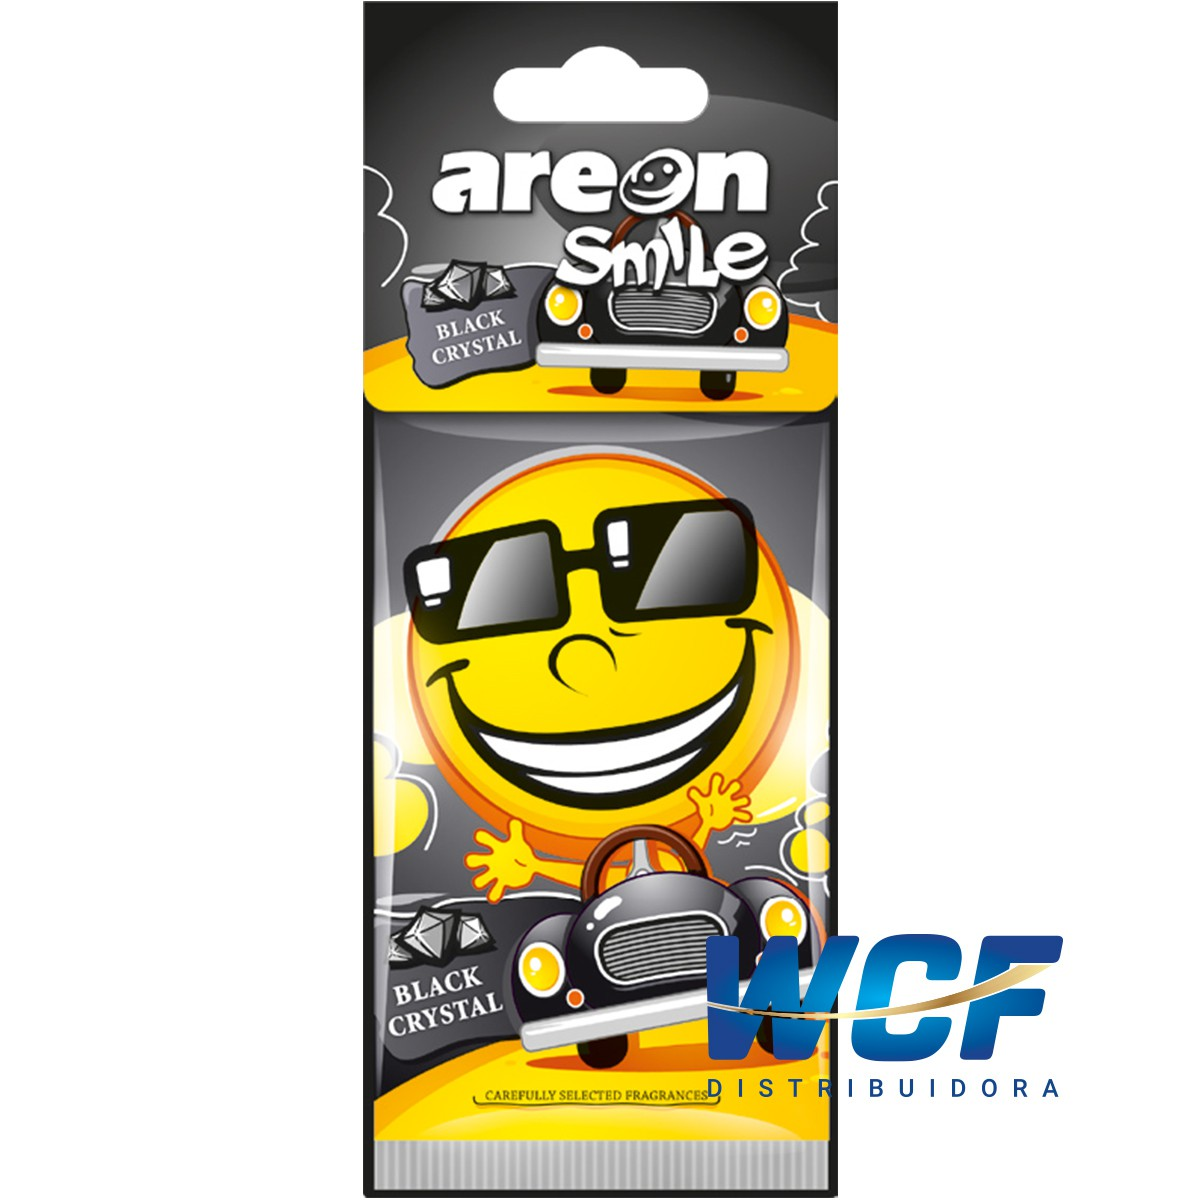 AREON MON SMILE SECO BLACK CRYSTAL (CRISTAL PRETO)